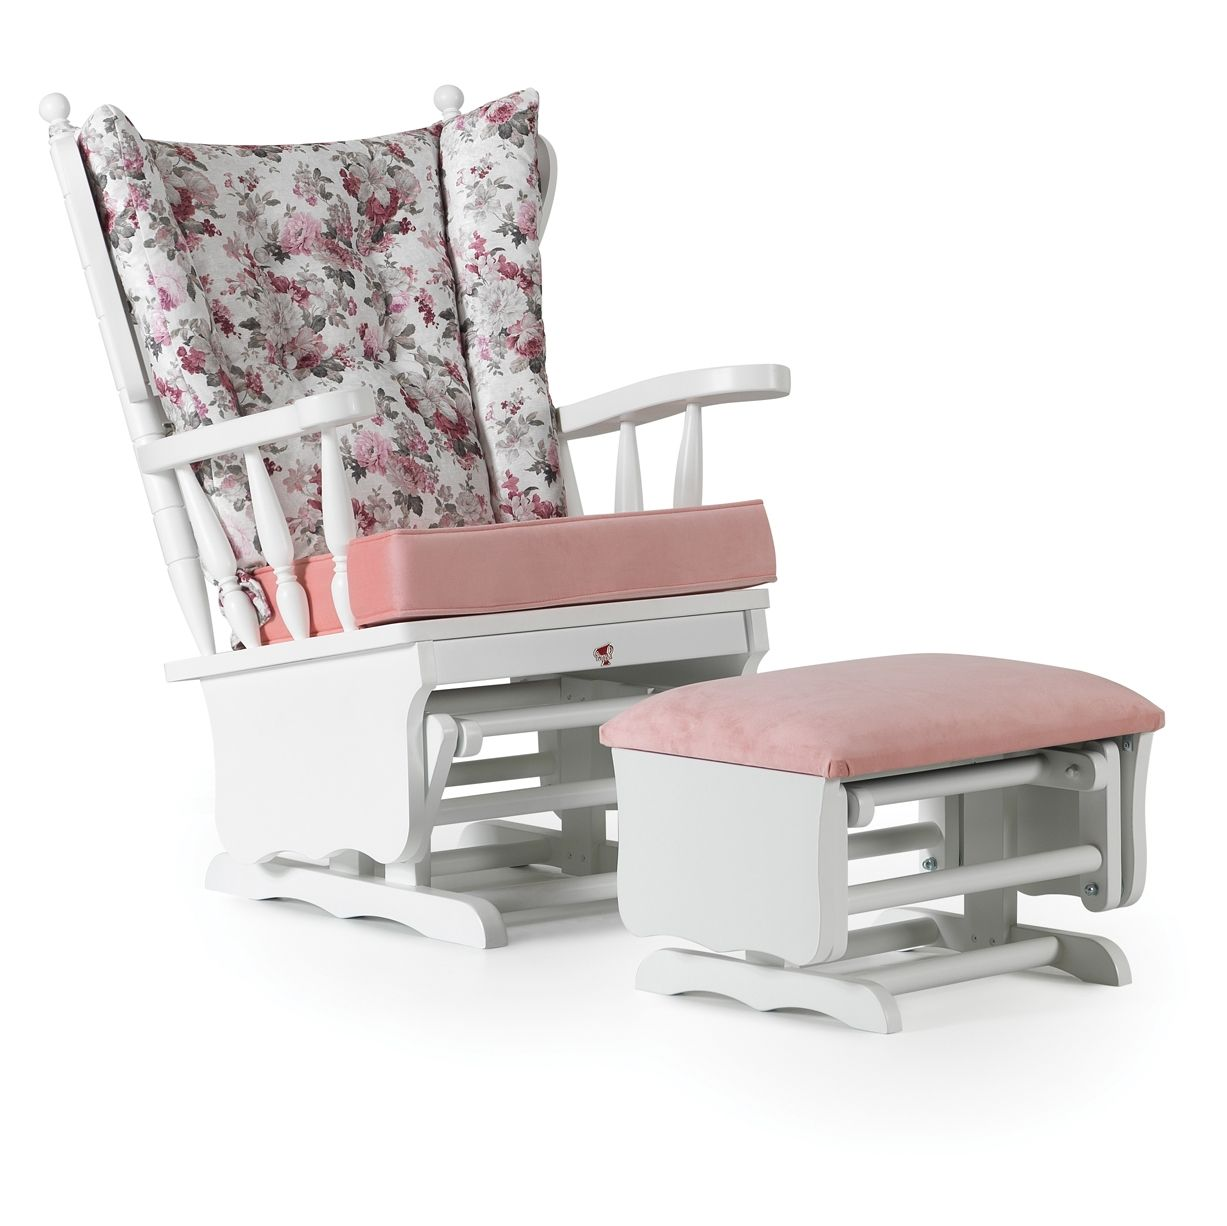 KUPA Rocking Chair and Gliders Ottoman for Nursery ( Pink )